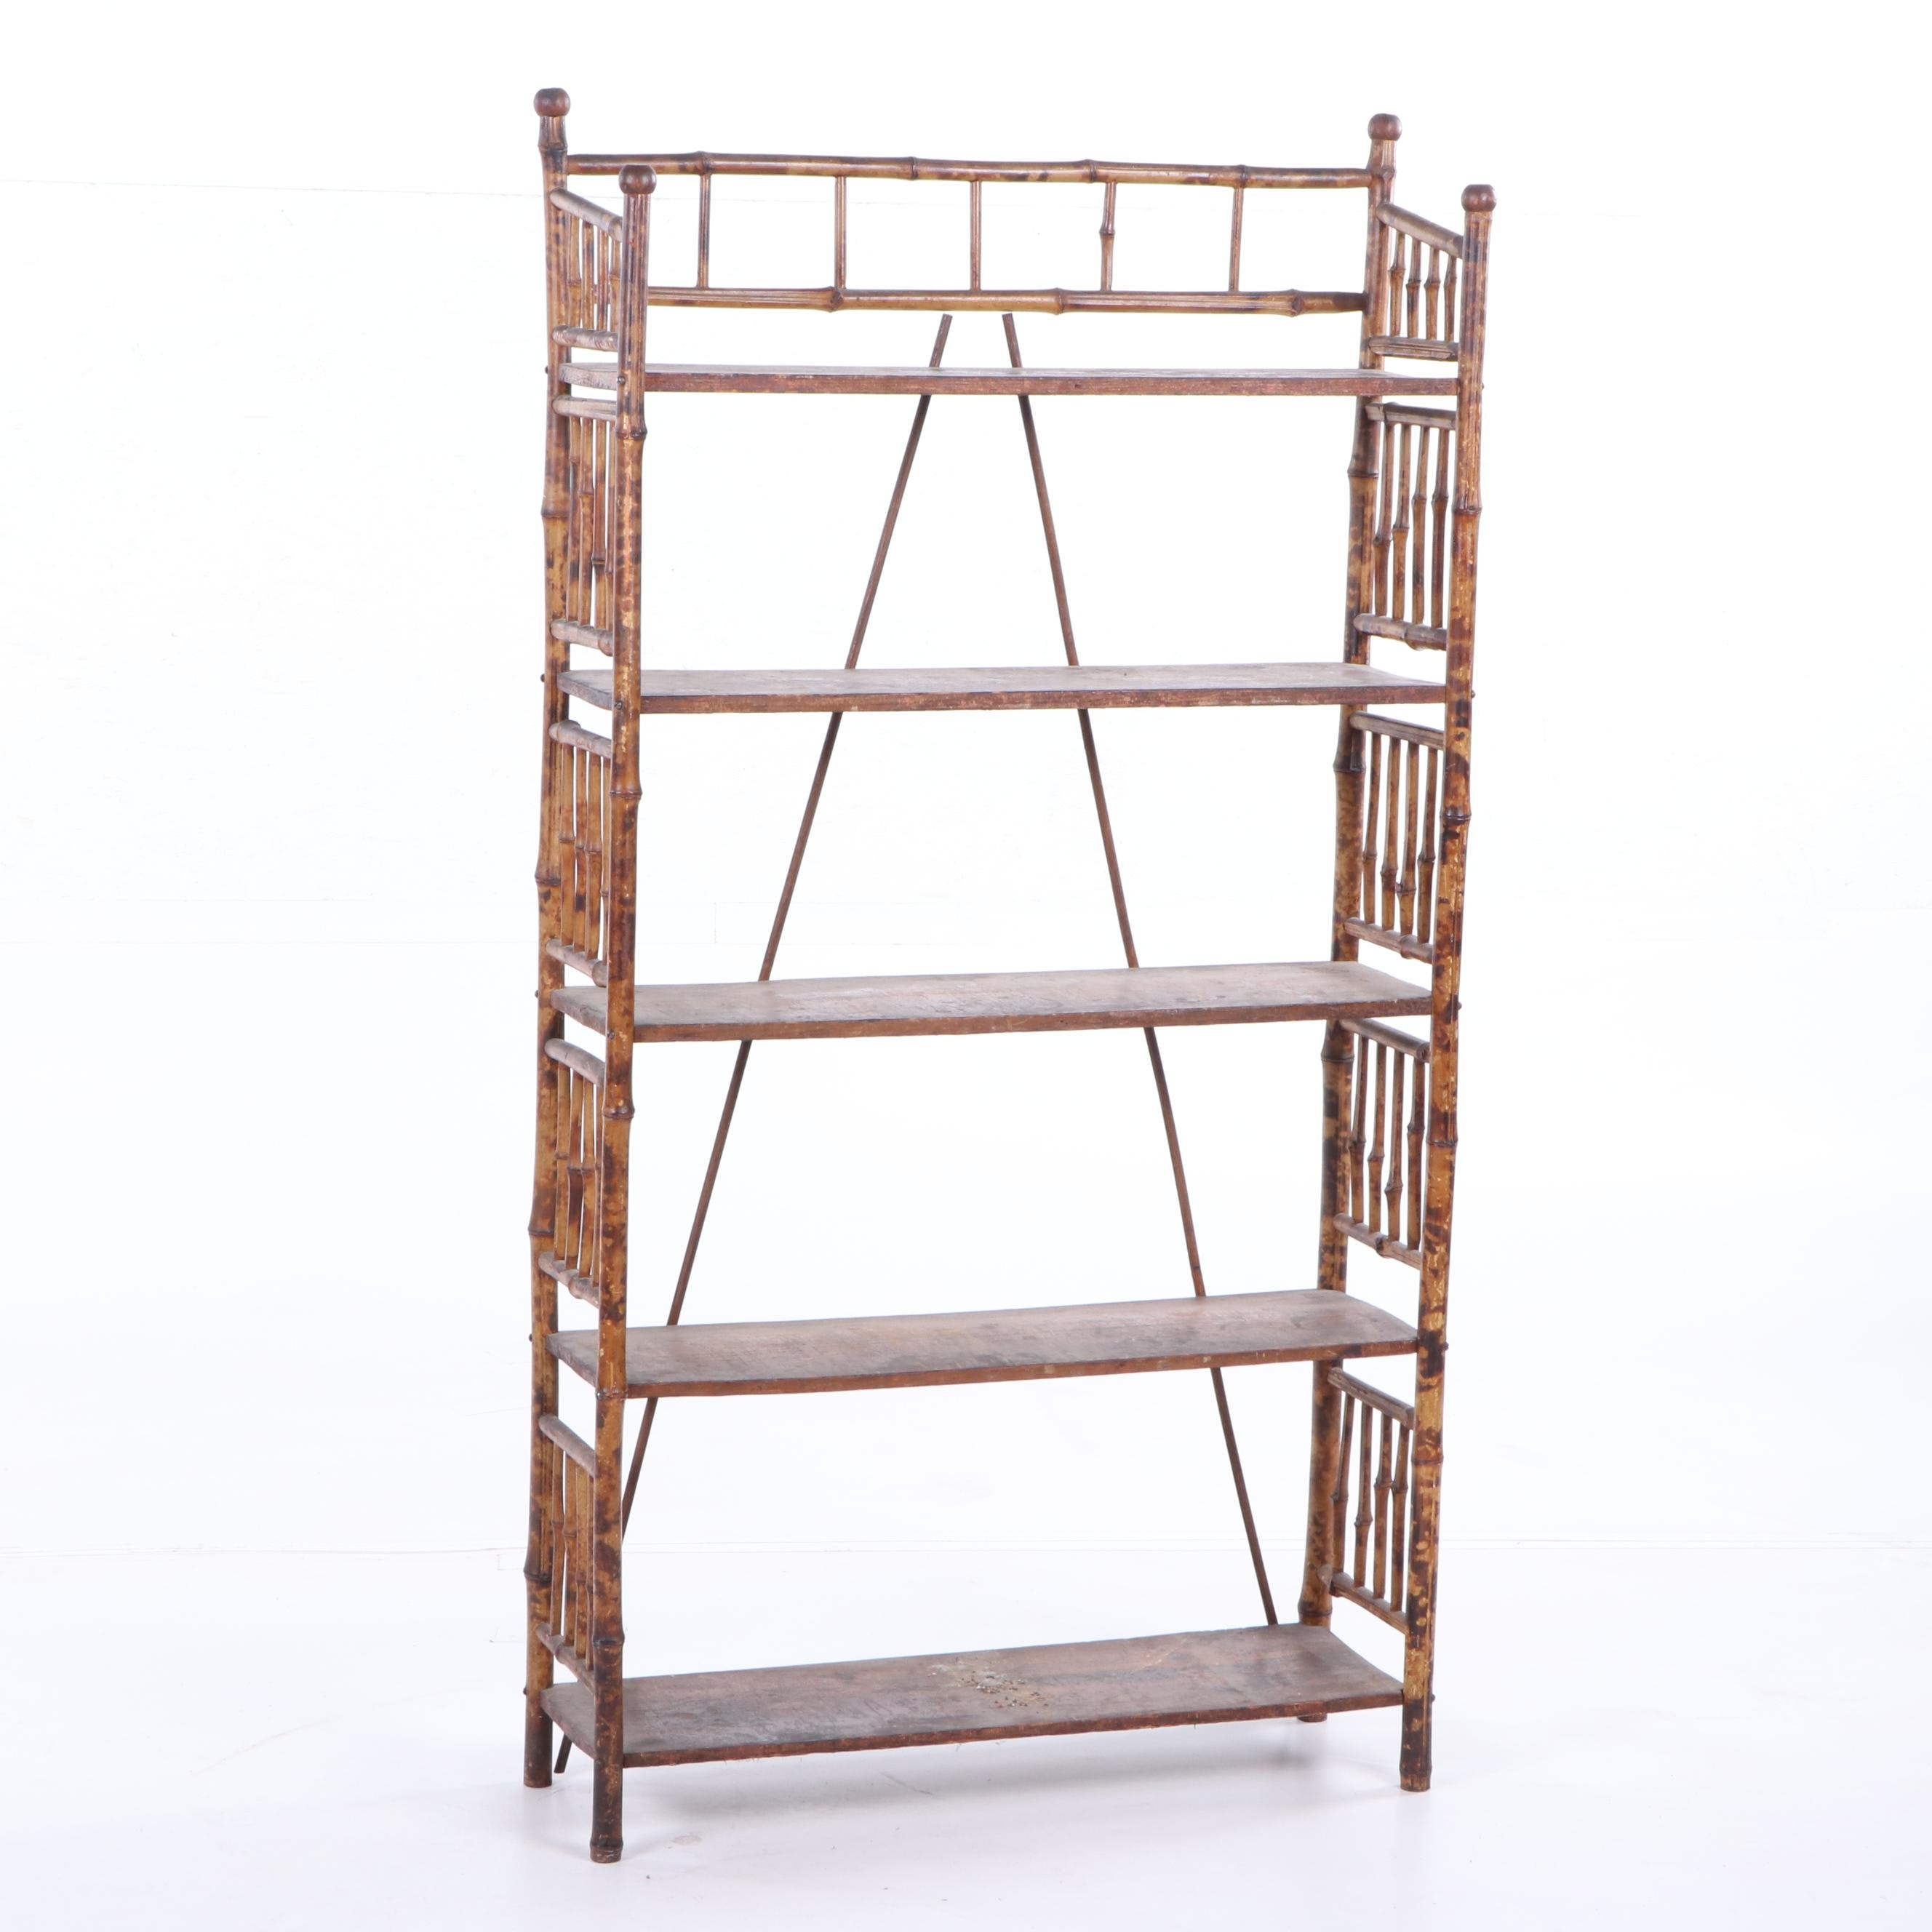 Victorian Style Bamboo and Wood Five-Shelf Étagère Bookcase, Late 19th Century